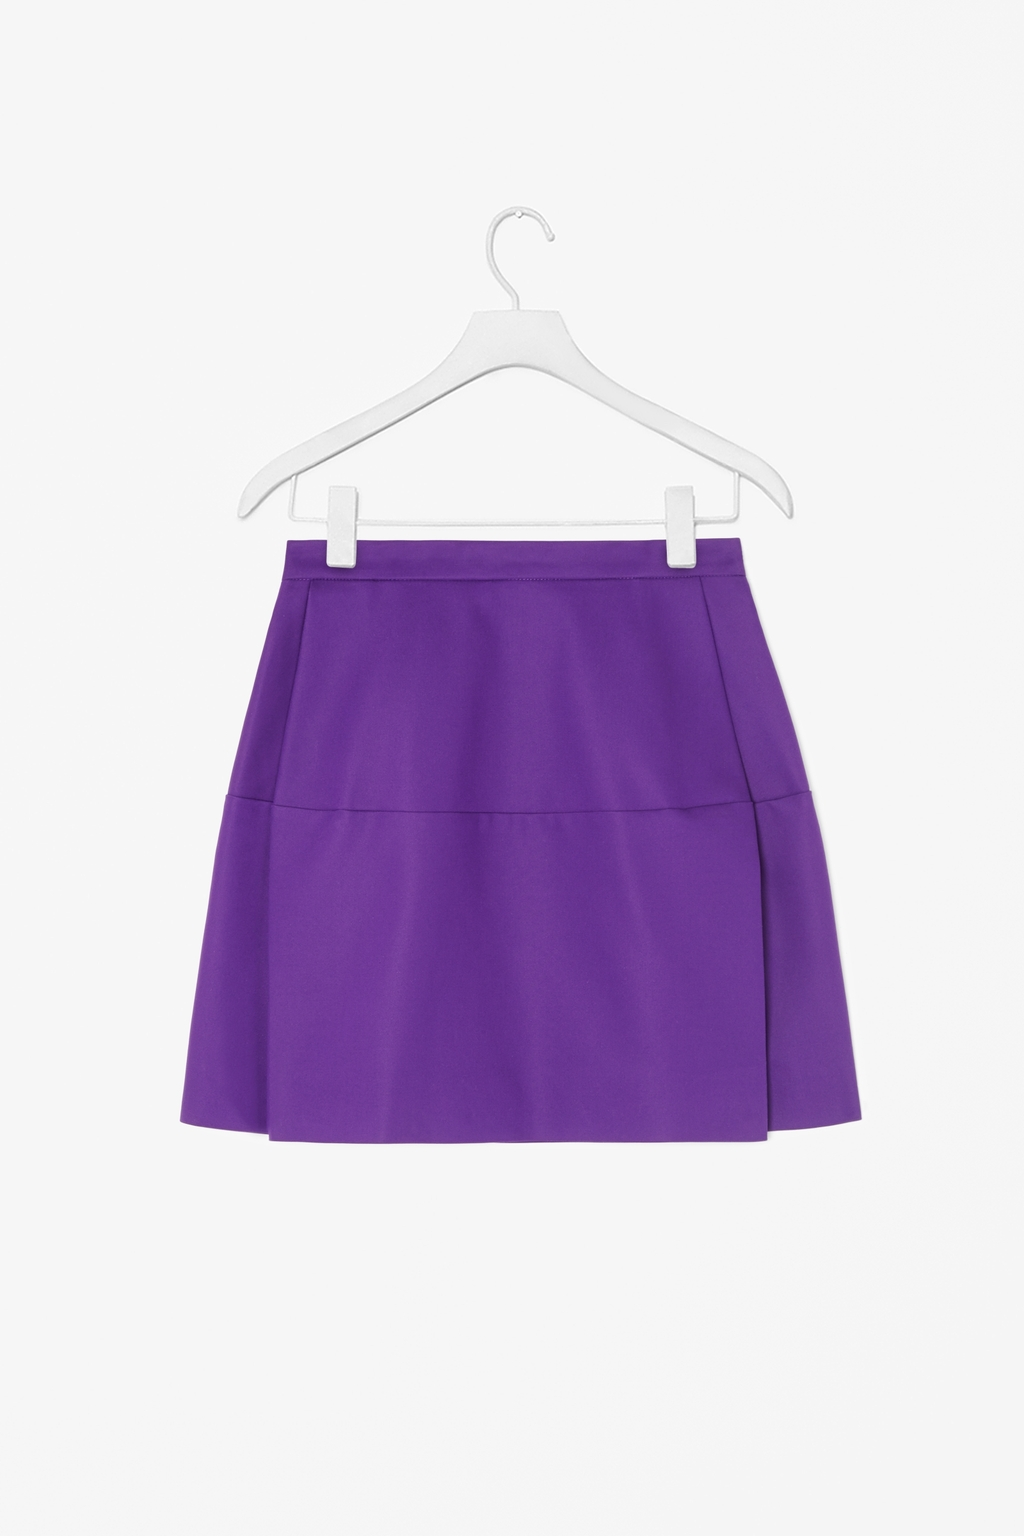 Short Panelled Skirt - length: mini; pattern: plain; fit: loose/voluminous; waist: mid/regular rise; predominant colour: purple; occasions: casual, evening; style: a-line; fibres: cotton - mix; pattern type: fabric; texture group: jersey - stretchy/drapey; season: s/s 2014